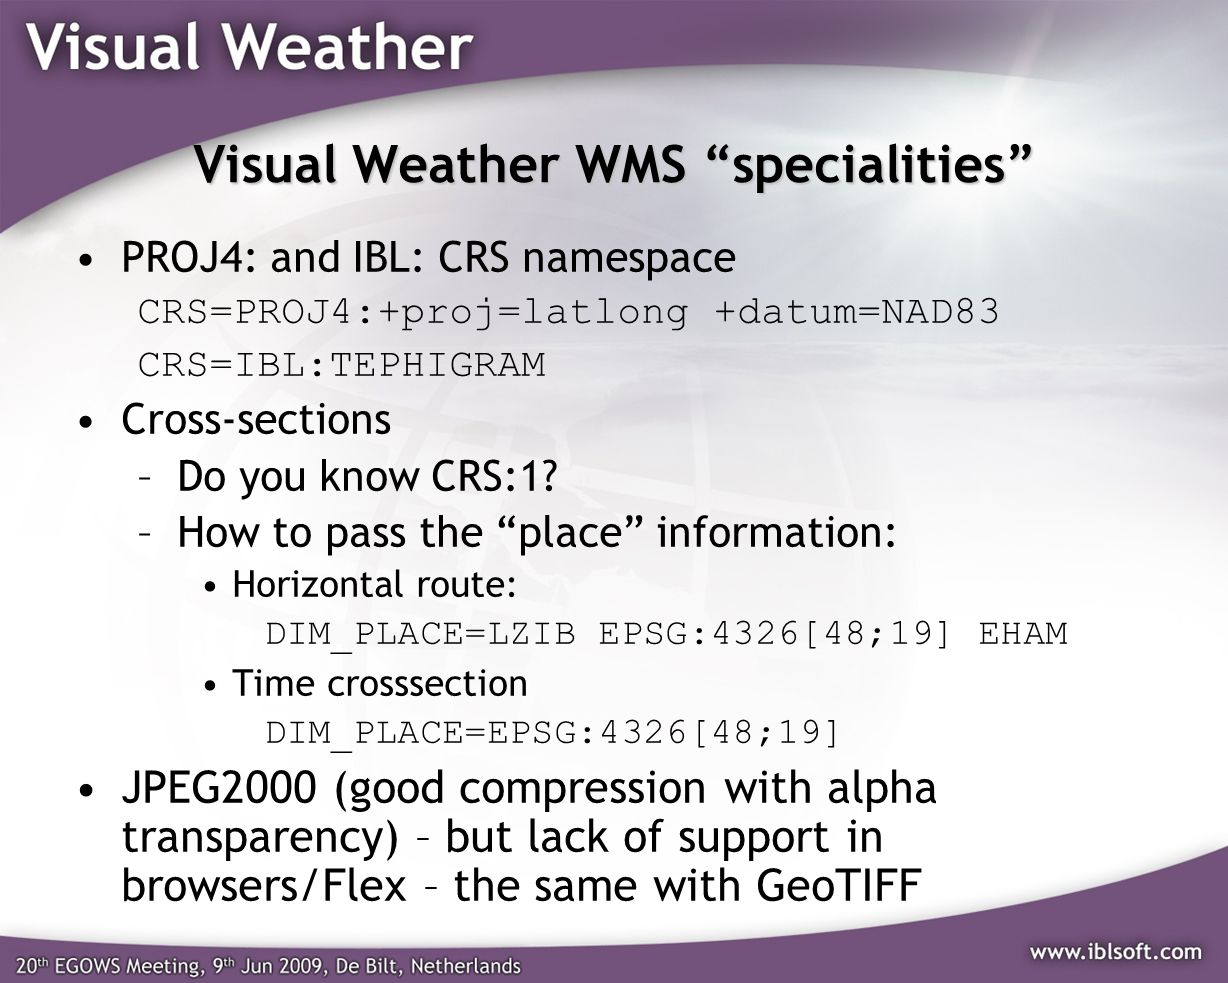 Visual Weather WMS specialities PROJ4: and IBL: CRS namespace CRS=PROJ4:+proj=latlong +datum=NAD83 CRS=IBL:TEPHIGRAM Cross-sections –Do you know CRS:1